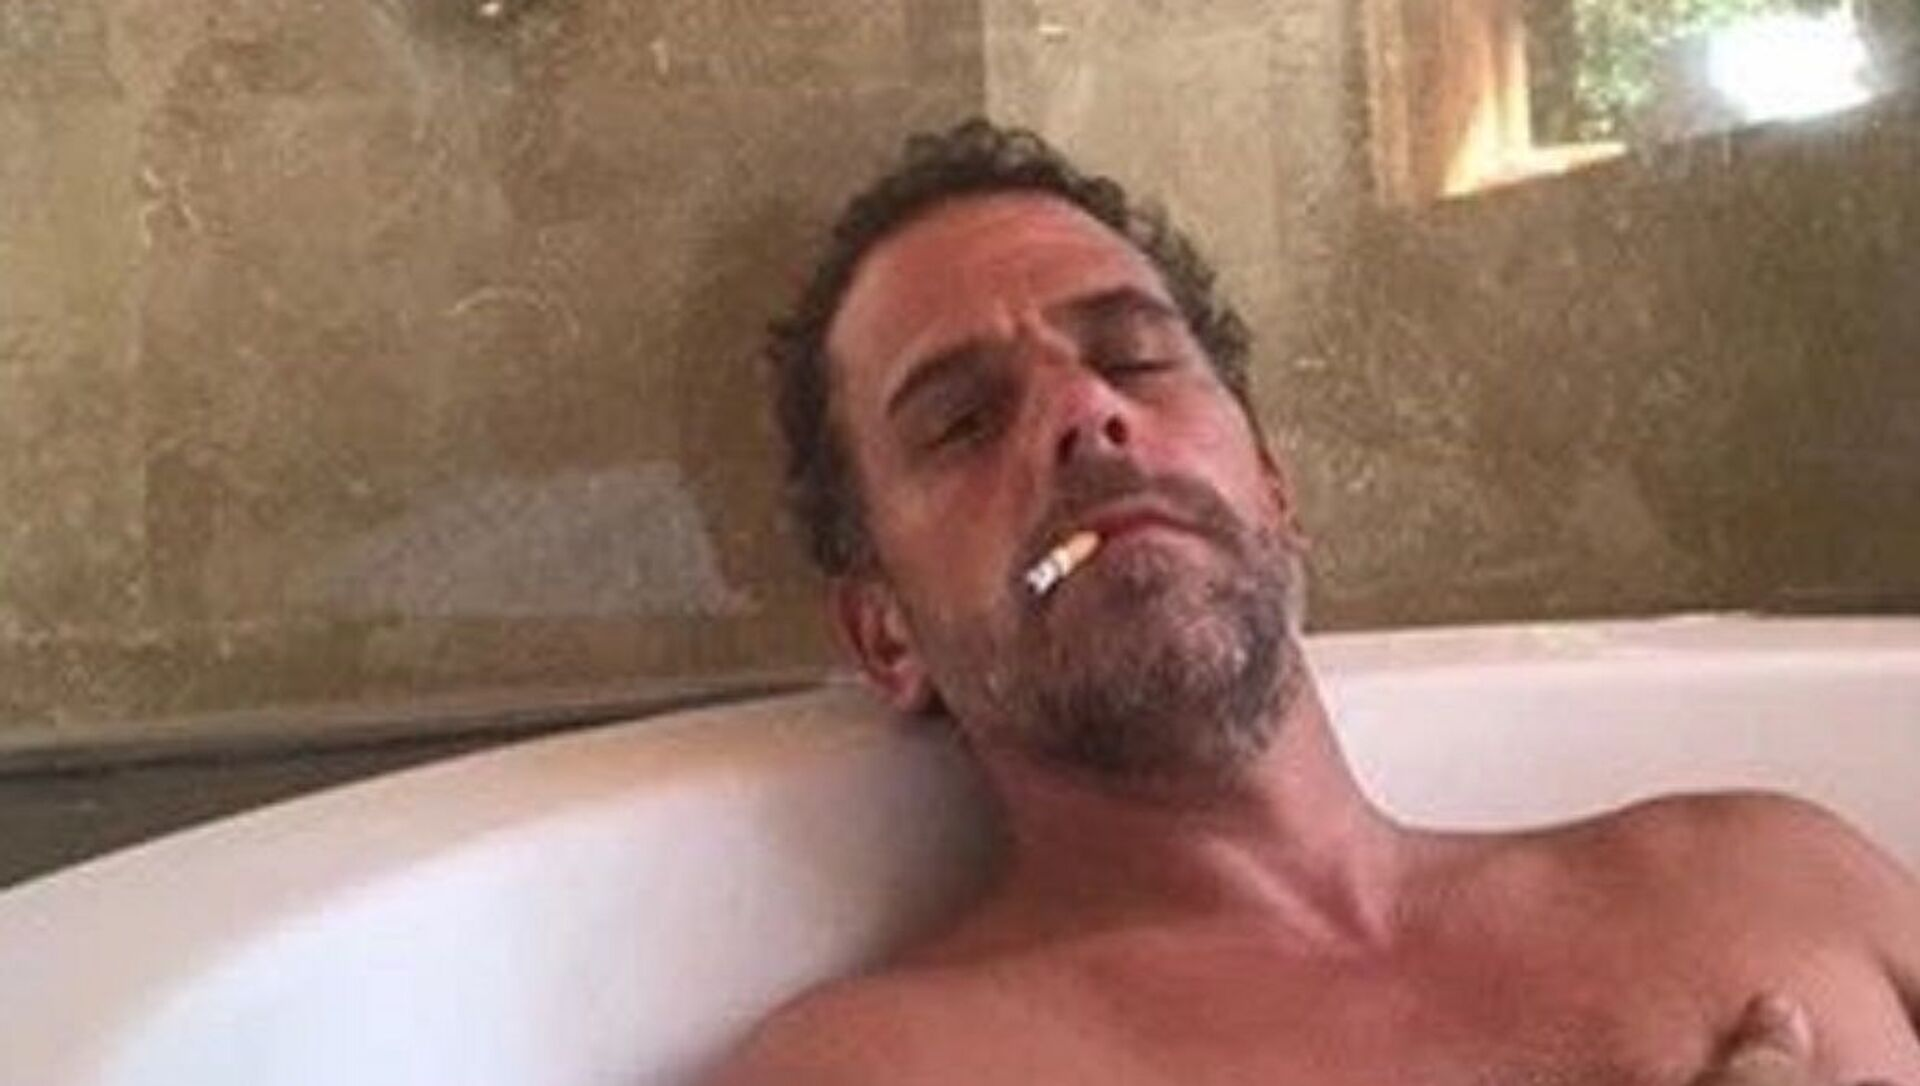 Photo of Hunter Biden relaxing in a bathtub, reportedly taken from a computer dropped off at a Delaware computer repair shop. - Sputnik International, 1920, 30.07.2021